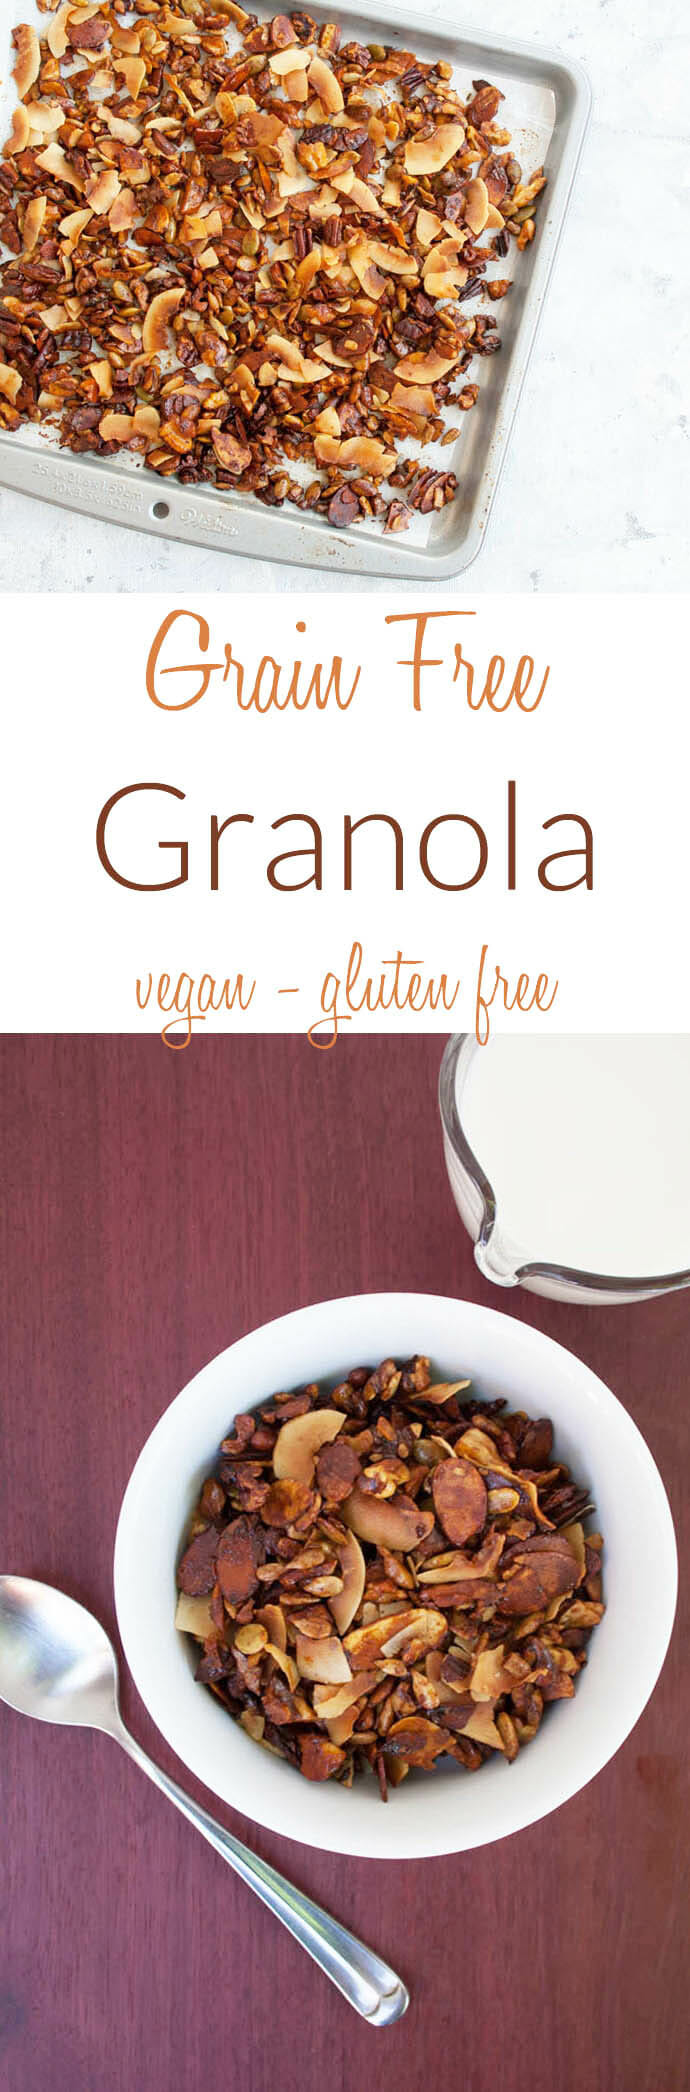 Grain Free Granola collage photo with text.